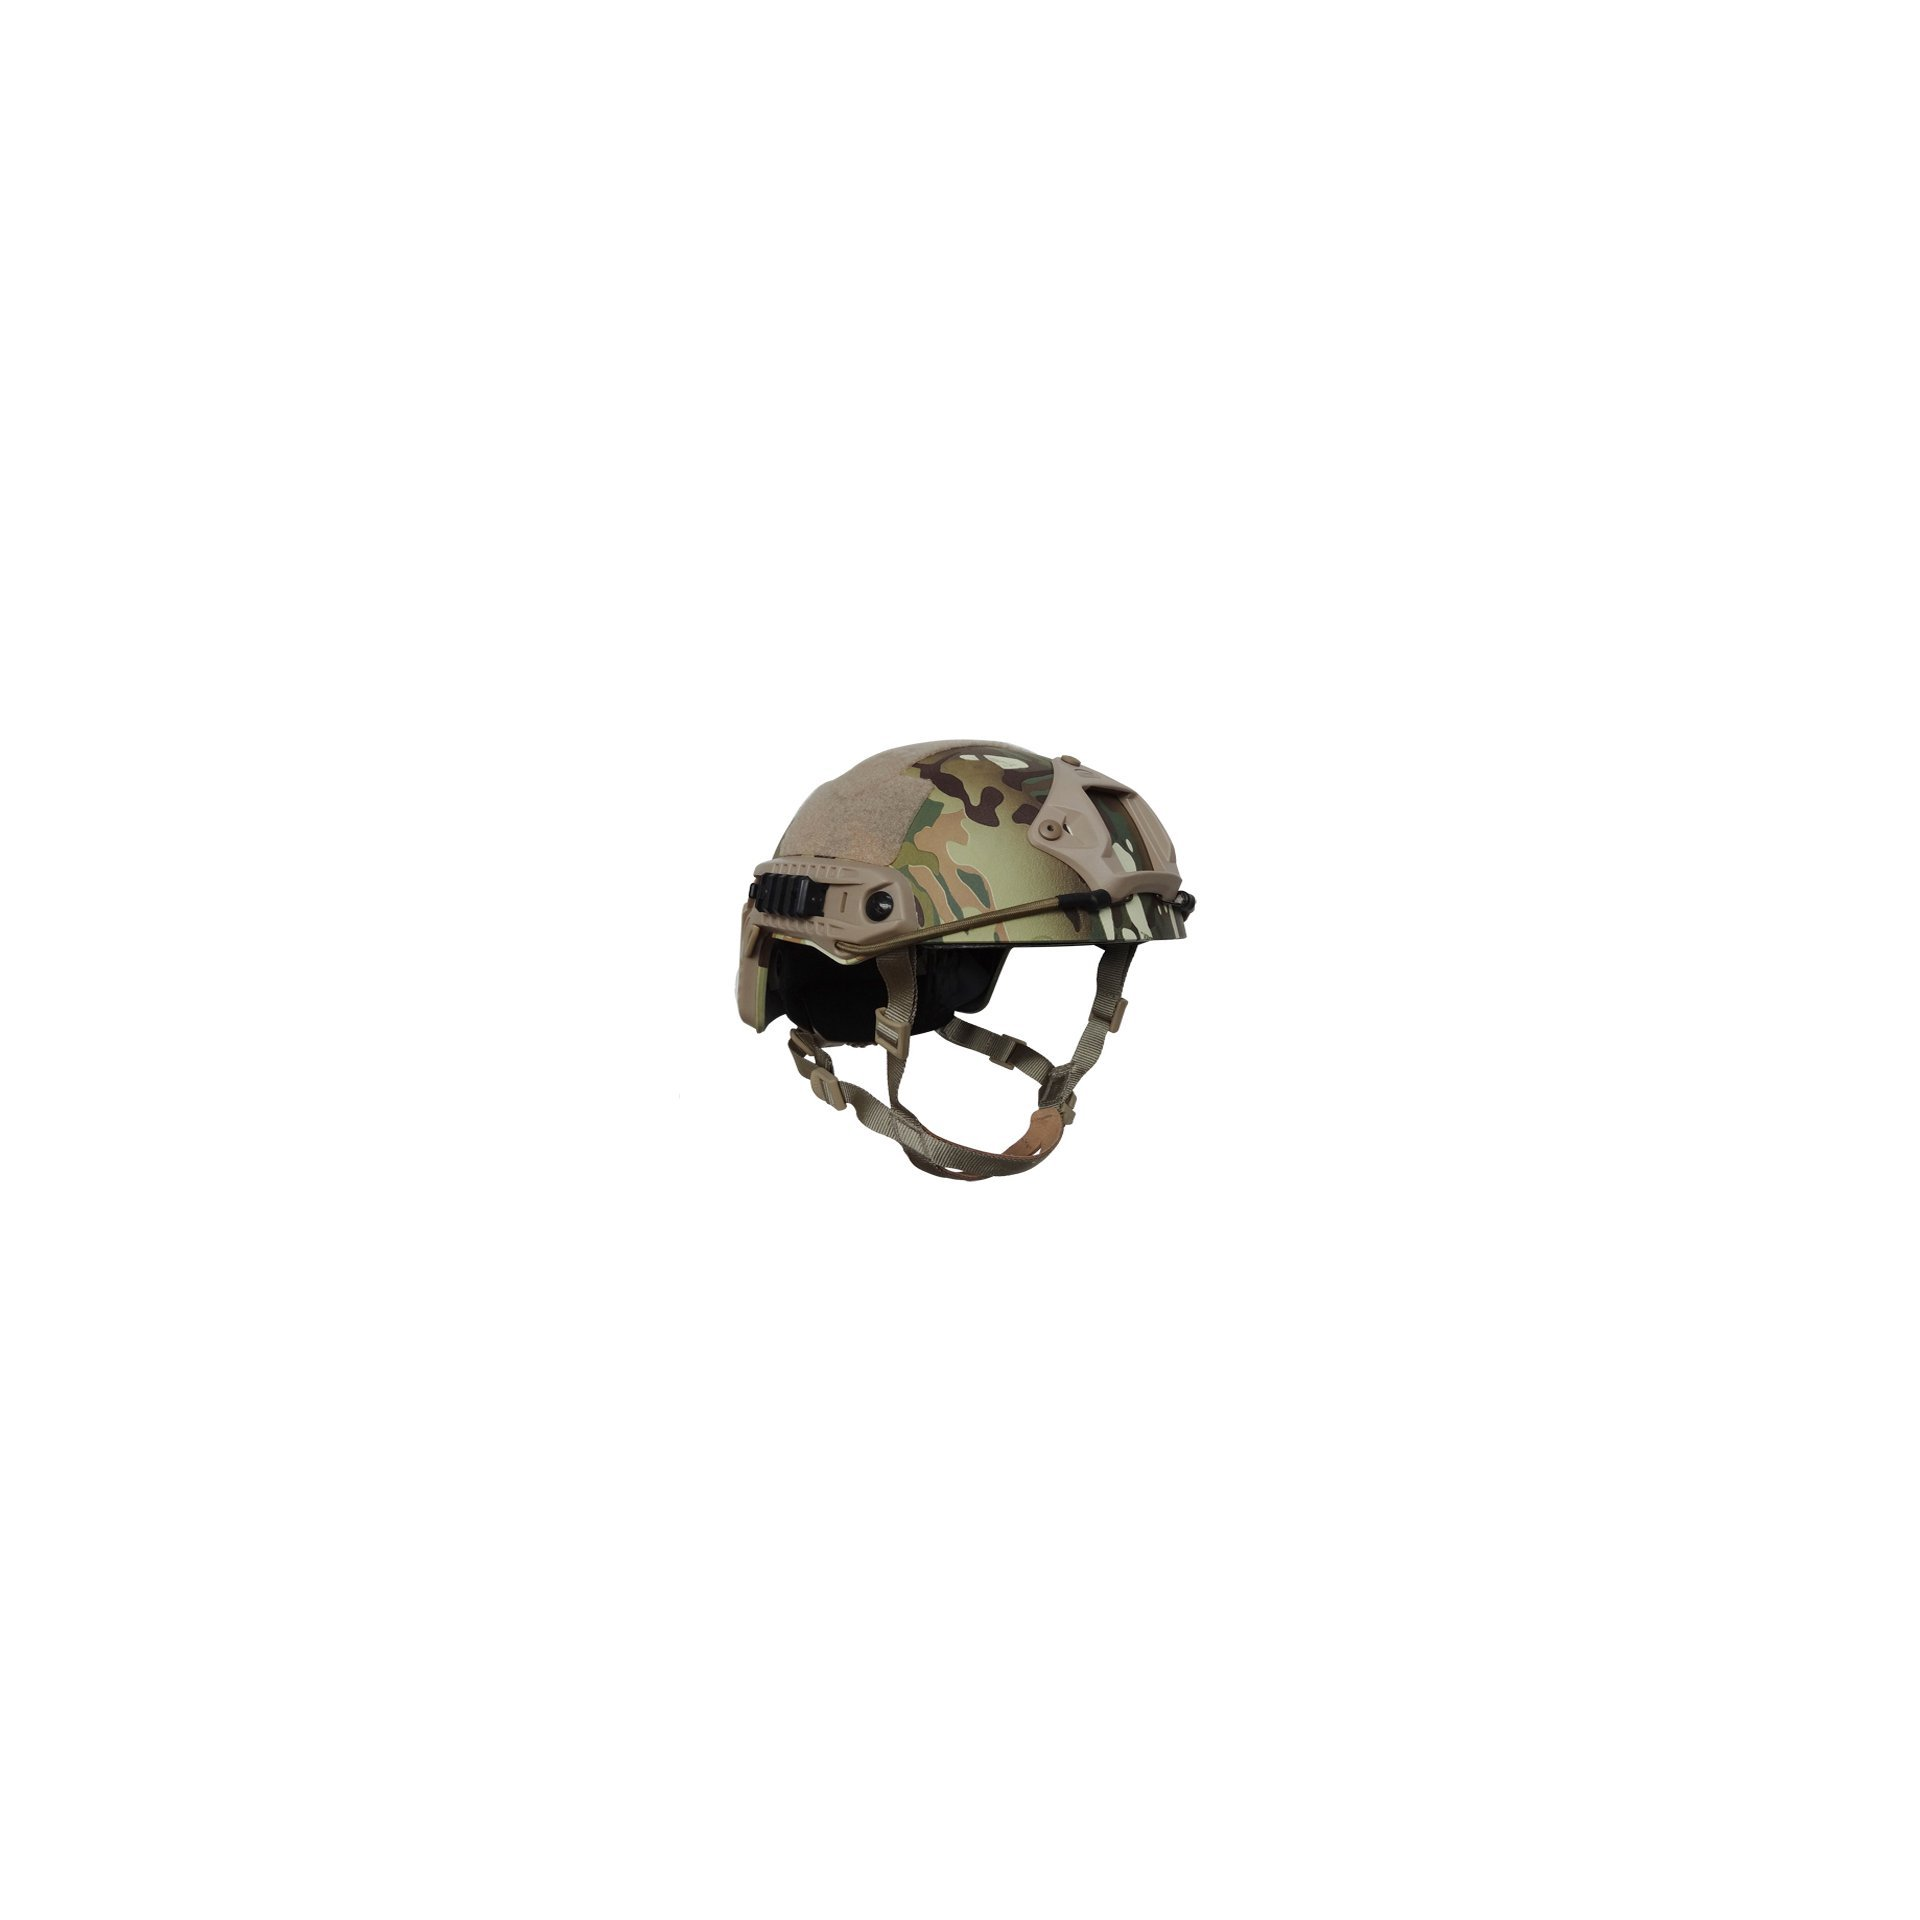 Capacete Tático Para Airsoft/paintball Mod Fast B Multican